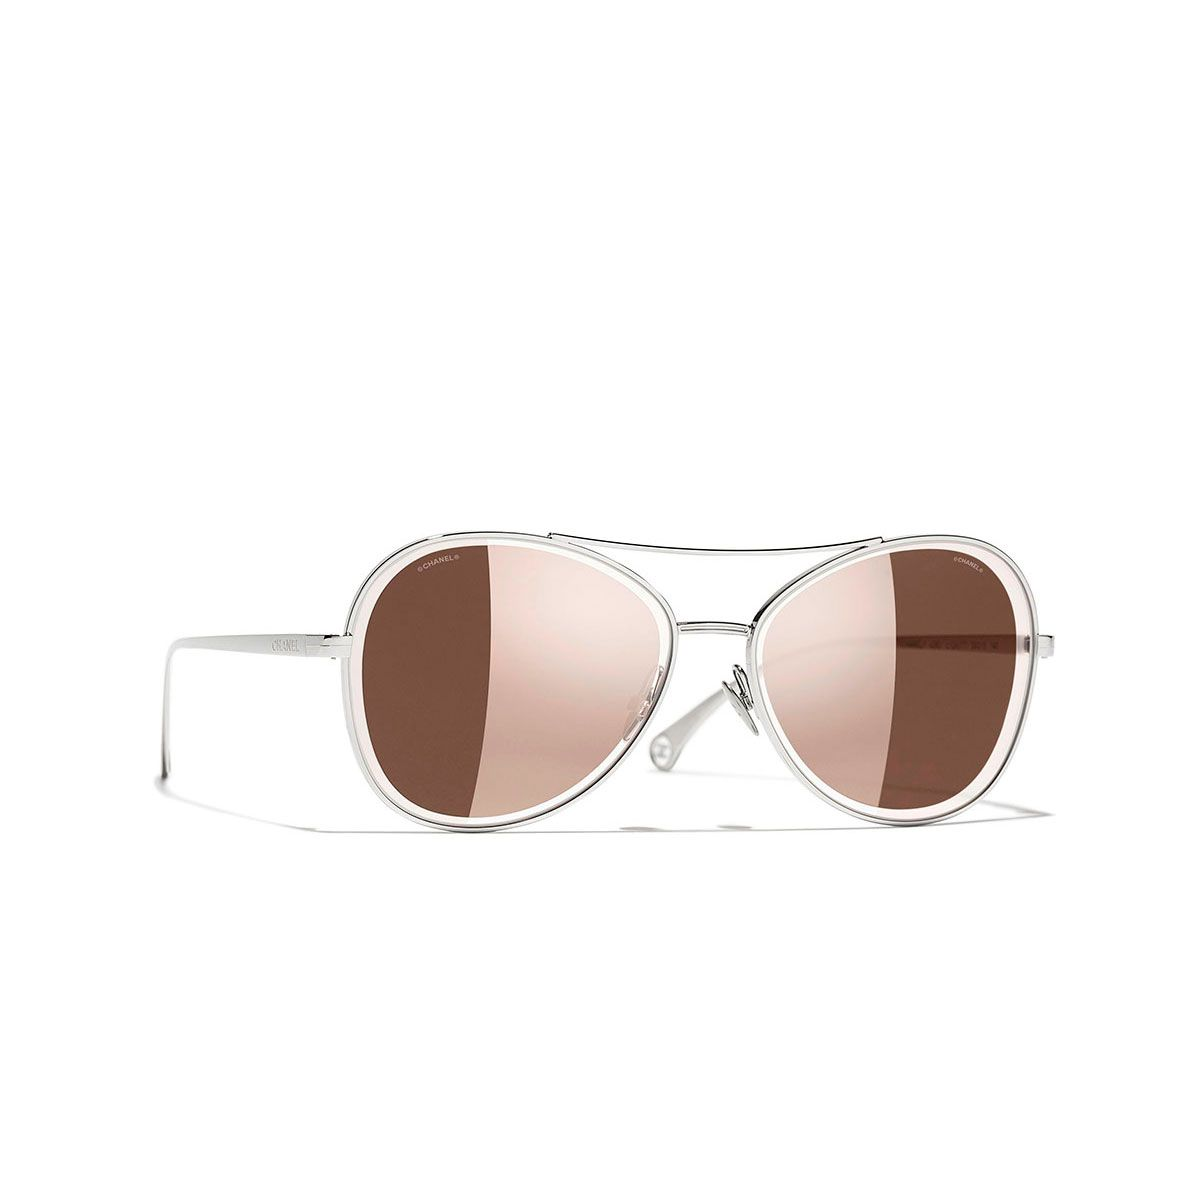 Pilot Sunglasses 382 Sunglasses